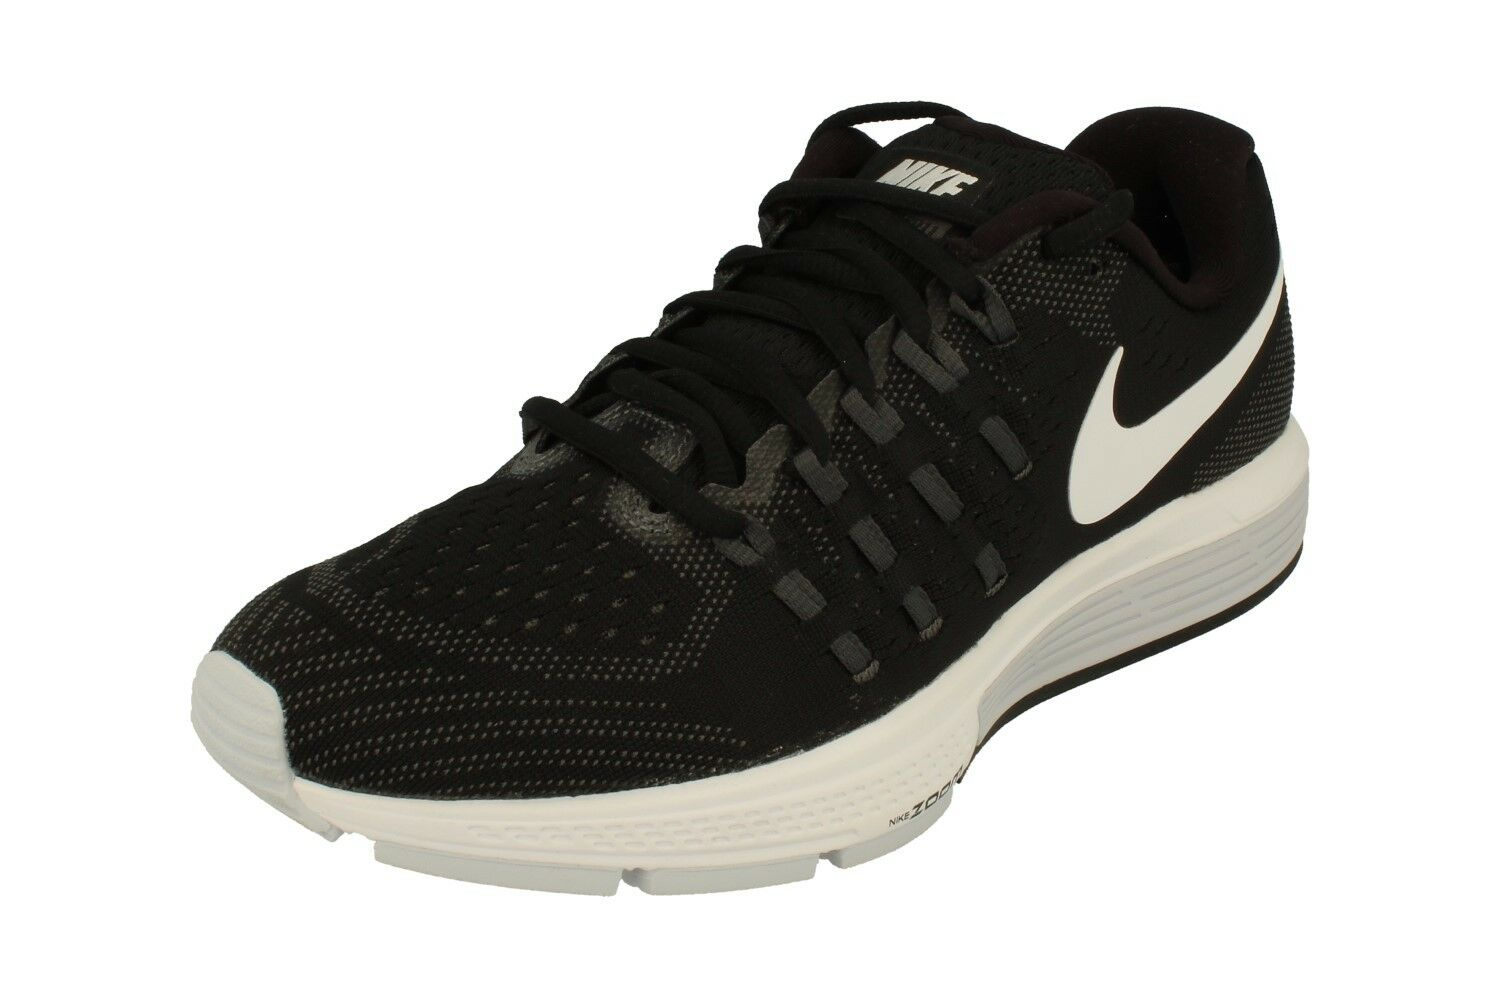 Nike Air Zoom Vomero 11 Mens Running Trainers 818099 Sneakers shoes  001